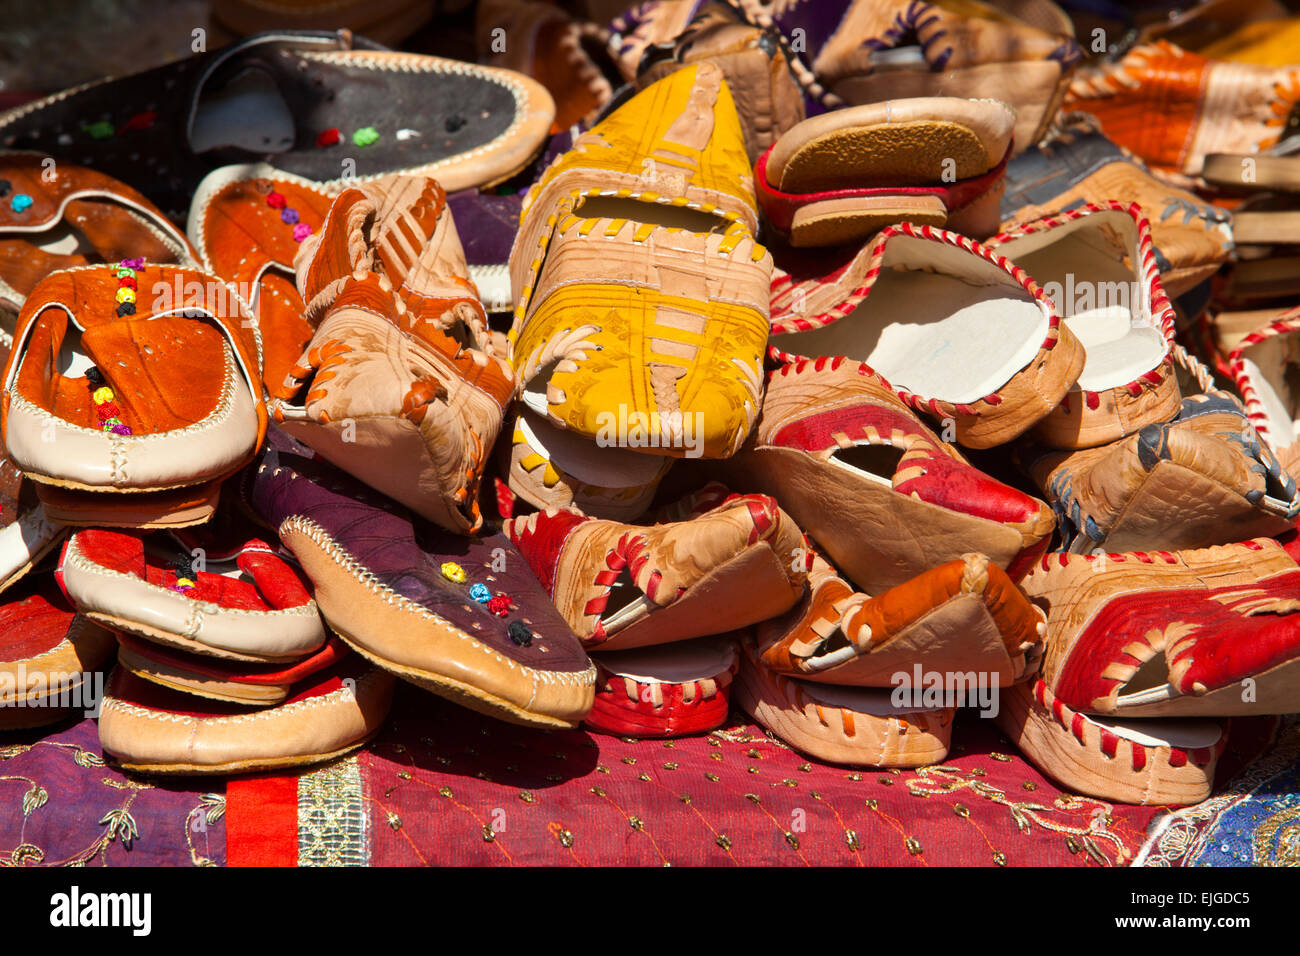 935512ab7bc4 Loads of multicoloured Moroccan leather slippers Stock Photo ...